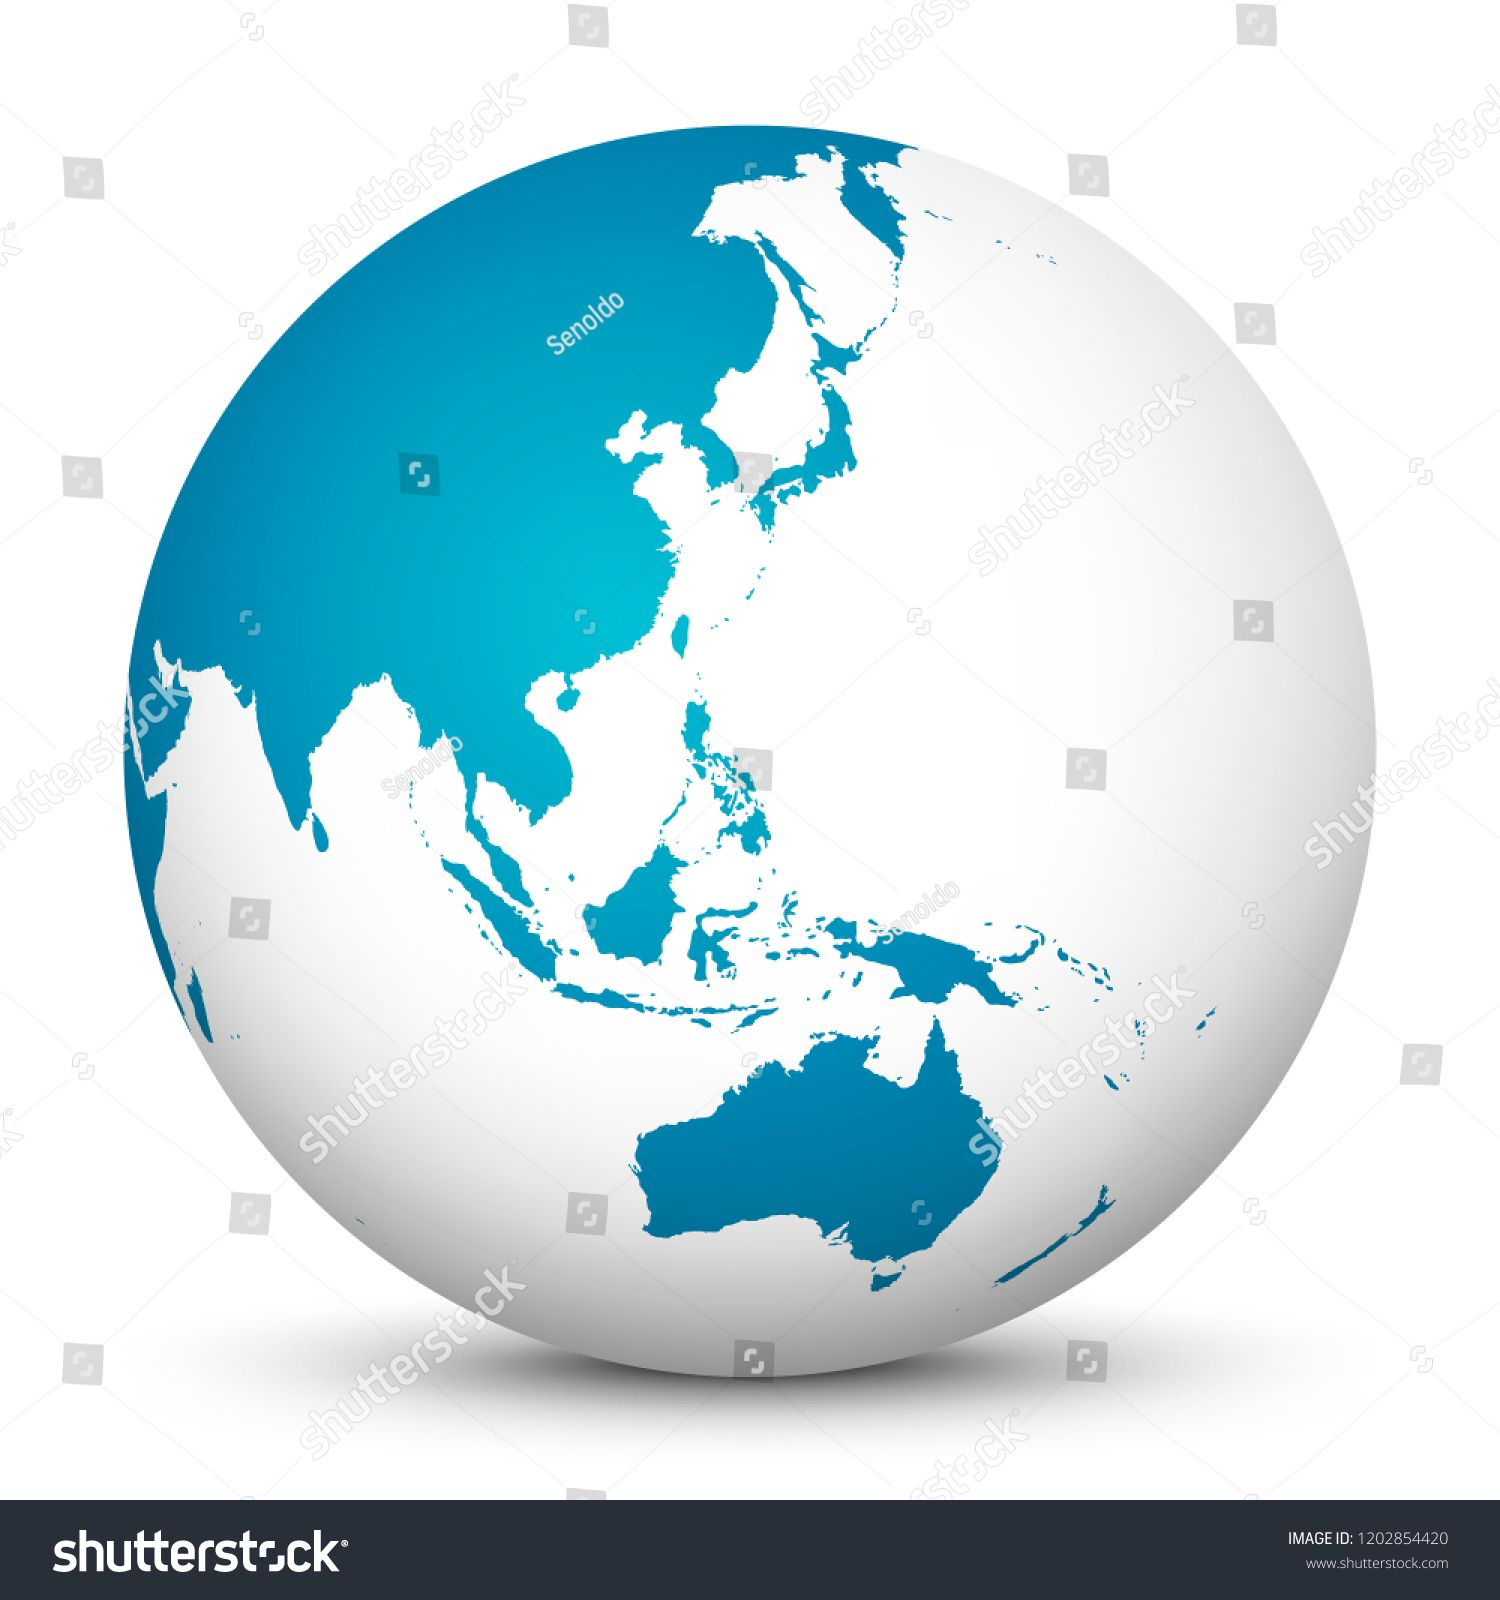 White 3d Globe Icon With Blue Continents Planet Earth Focus On Australia Japan India Korea And New Zealand Pacific Ocean Worl Globe Icon 3d Globe Globe